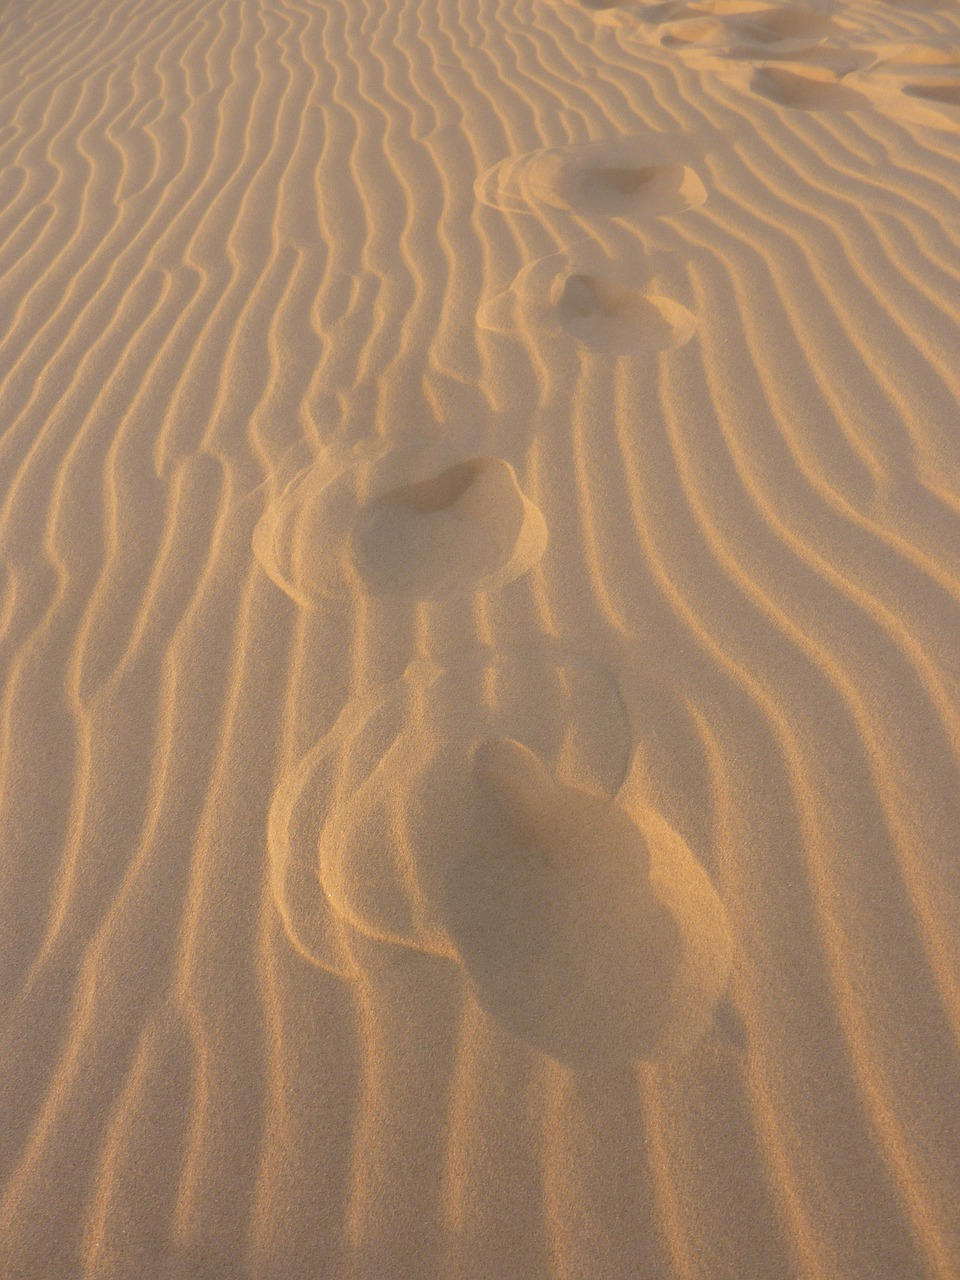 sand uruguay footprints in the sand free photo